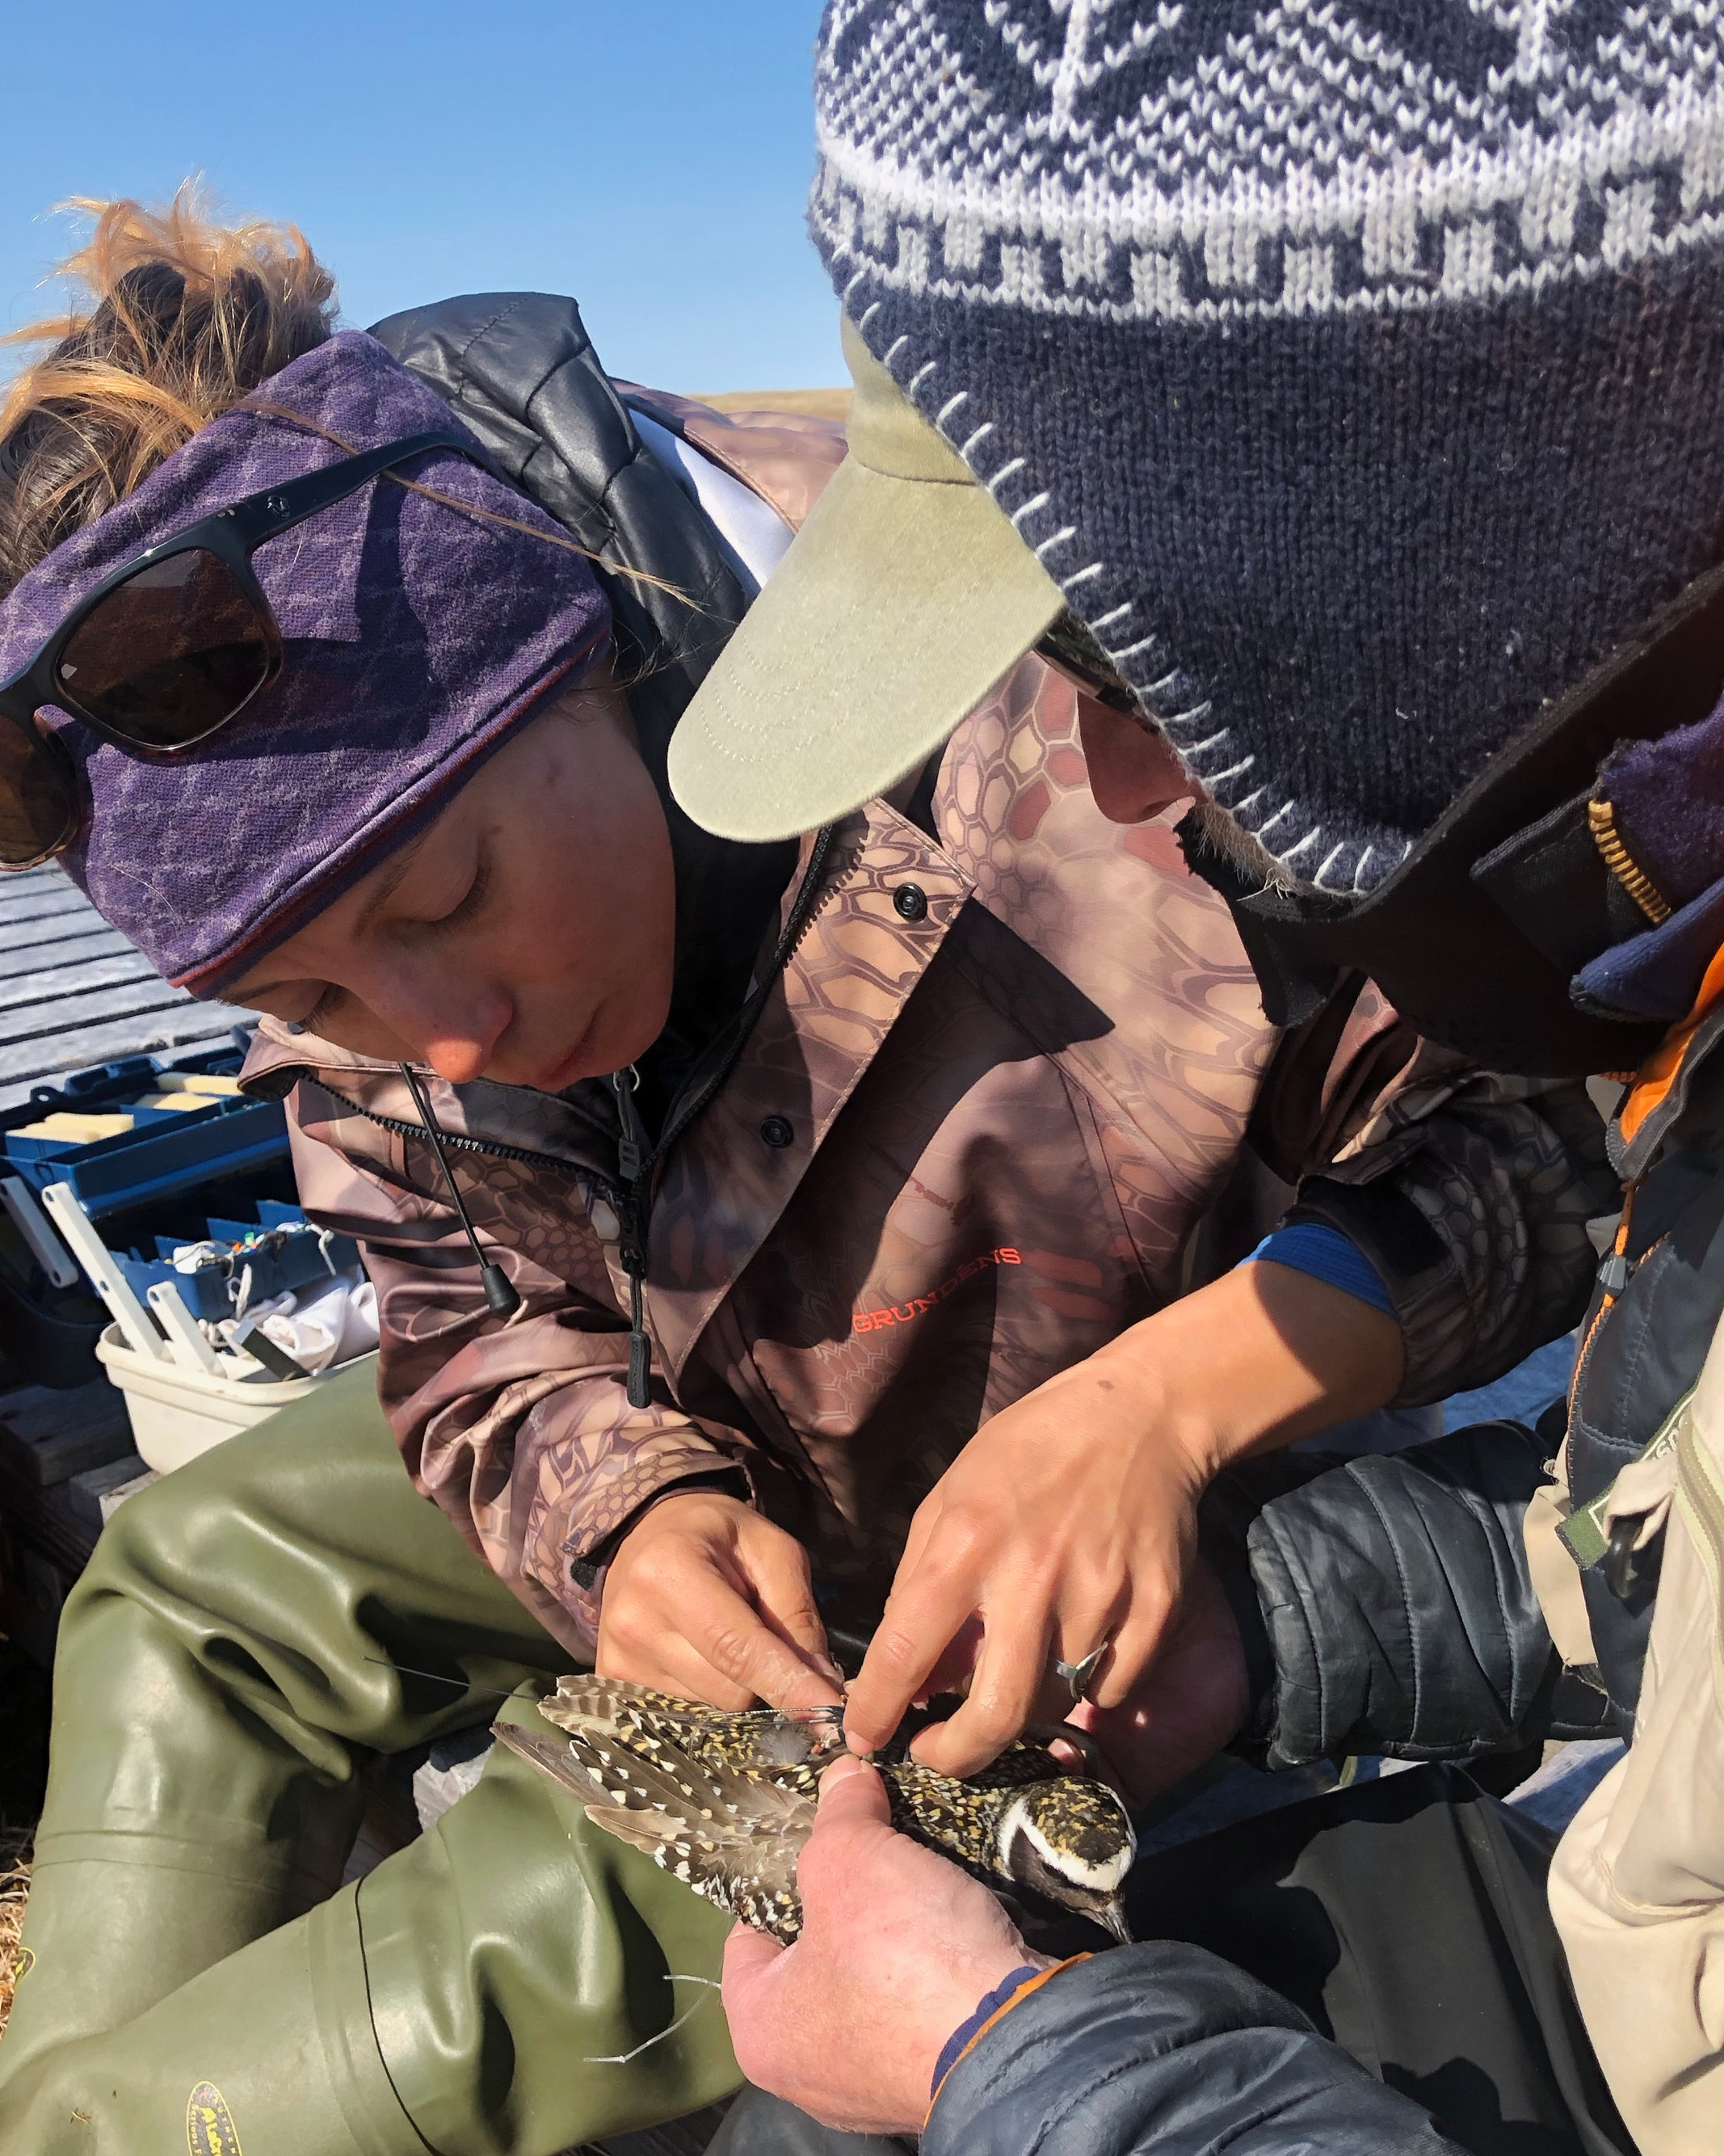 Lindsay Hermanns (VTSP) and Rick Lanctot (USFWS) attaching a gps transmitter an American Golden Plover as part of a collaborative project, studying the movement of Arctic shorebirds throughout the annual cycle.